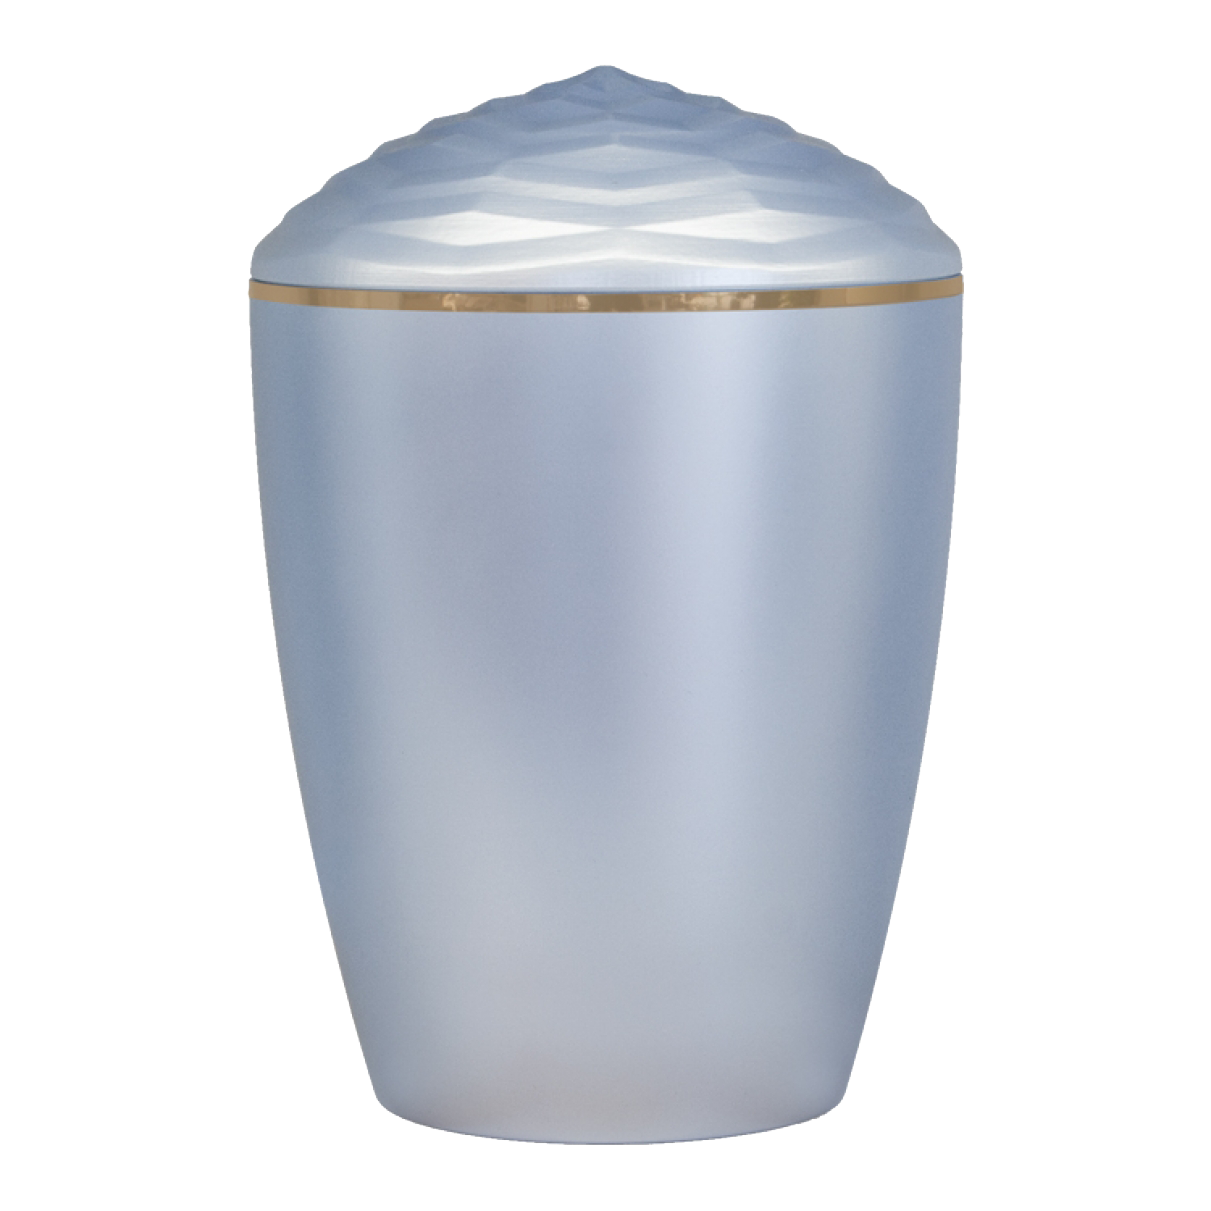 Forest Gold Band Bio Cremation Urn – Light Blue